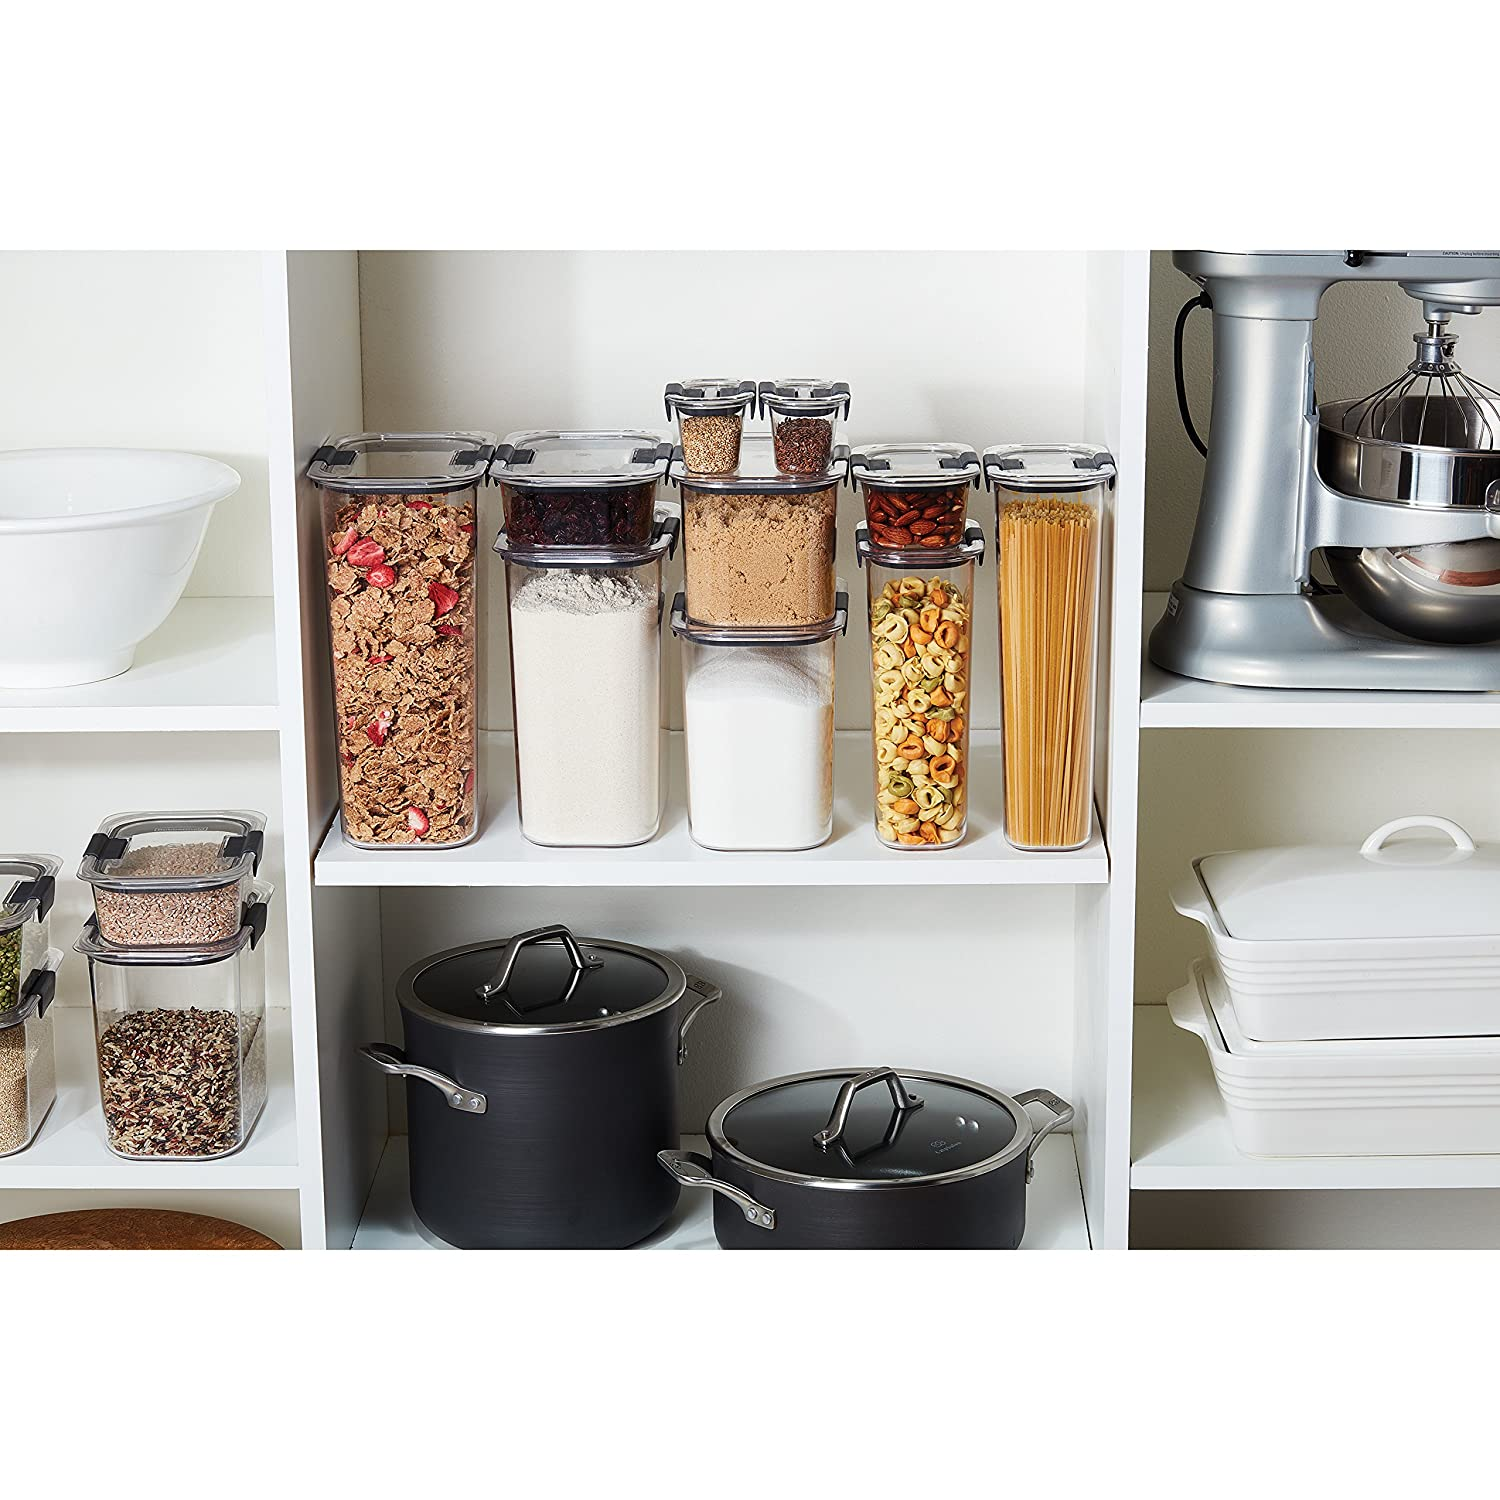 Amazon.com Rubbermaid Brilliance Pantry Airtight Food Storage Container BPA-Free Plastic 8.1 Cup Kitchen u0026 Dining  sc 1 st  Amazon.com & Amazon.com: Rubbermaid Brilliance Pantry Airtight Food Storage ...